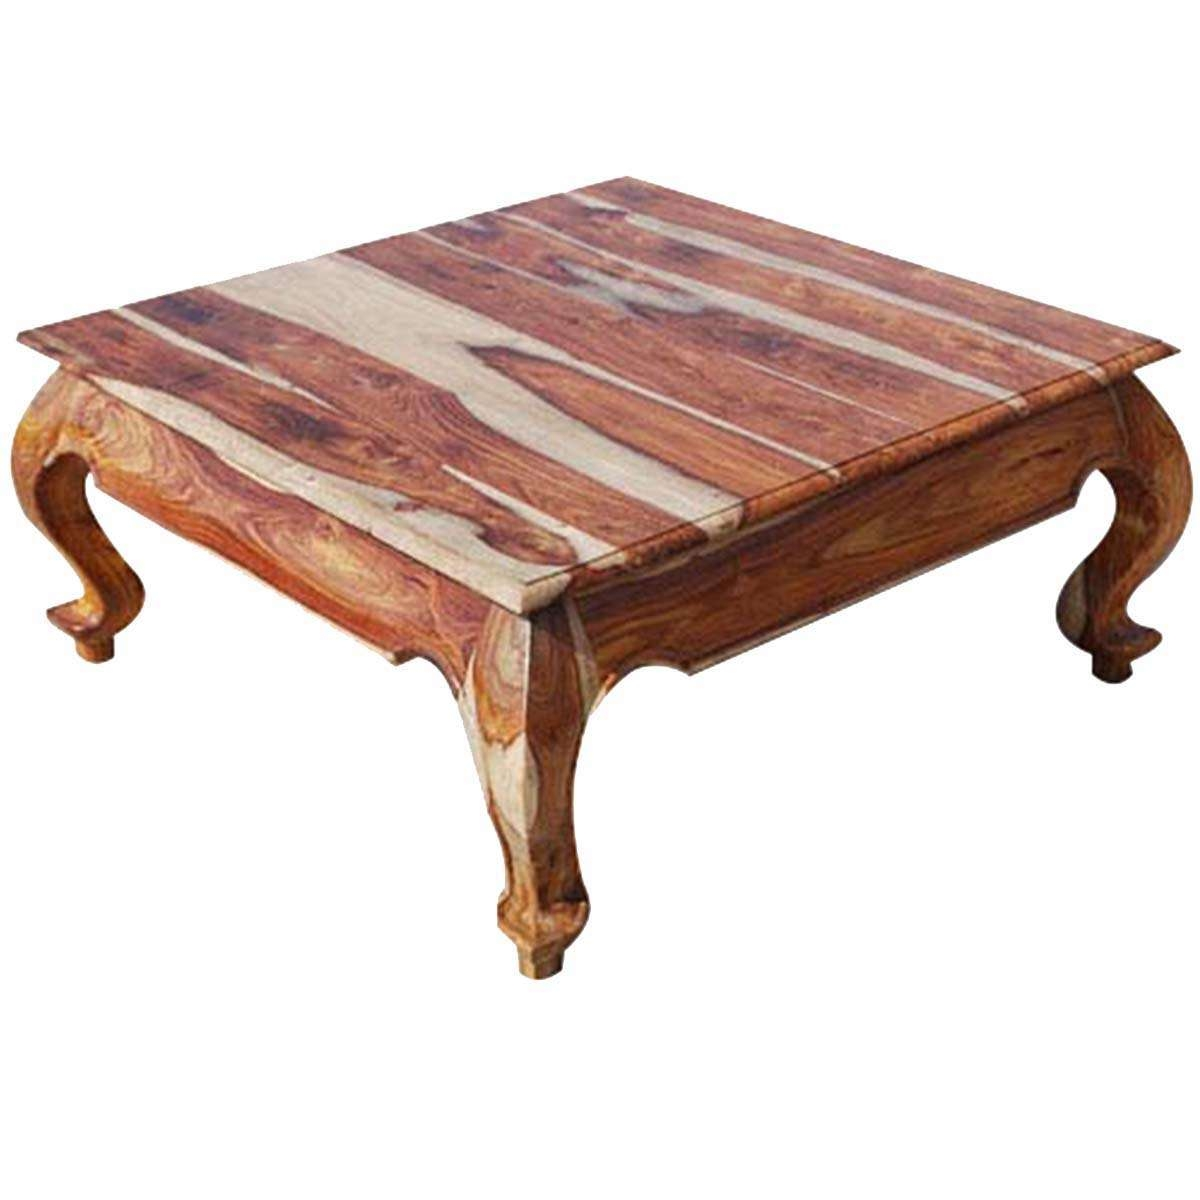 Most Current Rustic Wooden Coffee Tables Throughout Custom Made Rustic Wood Coffee Tables (View 9 of 20)